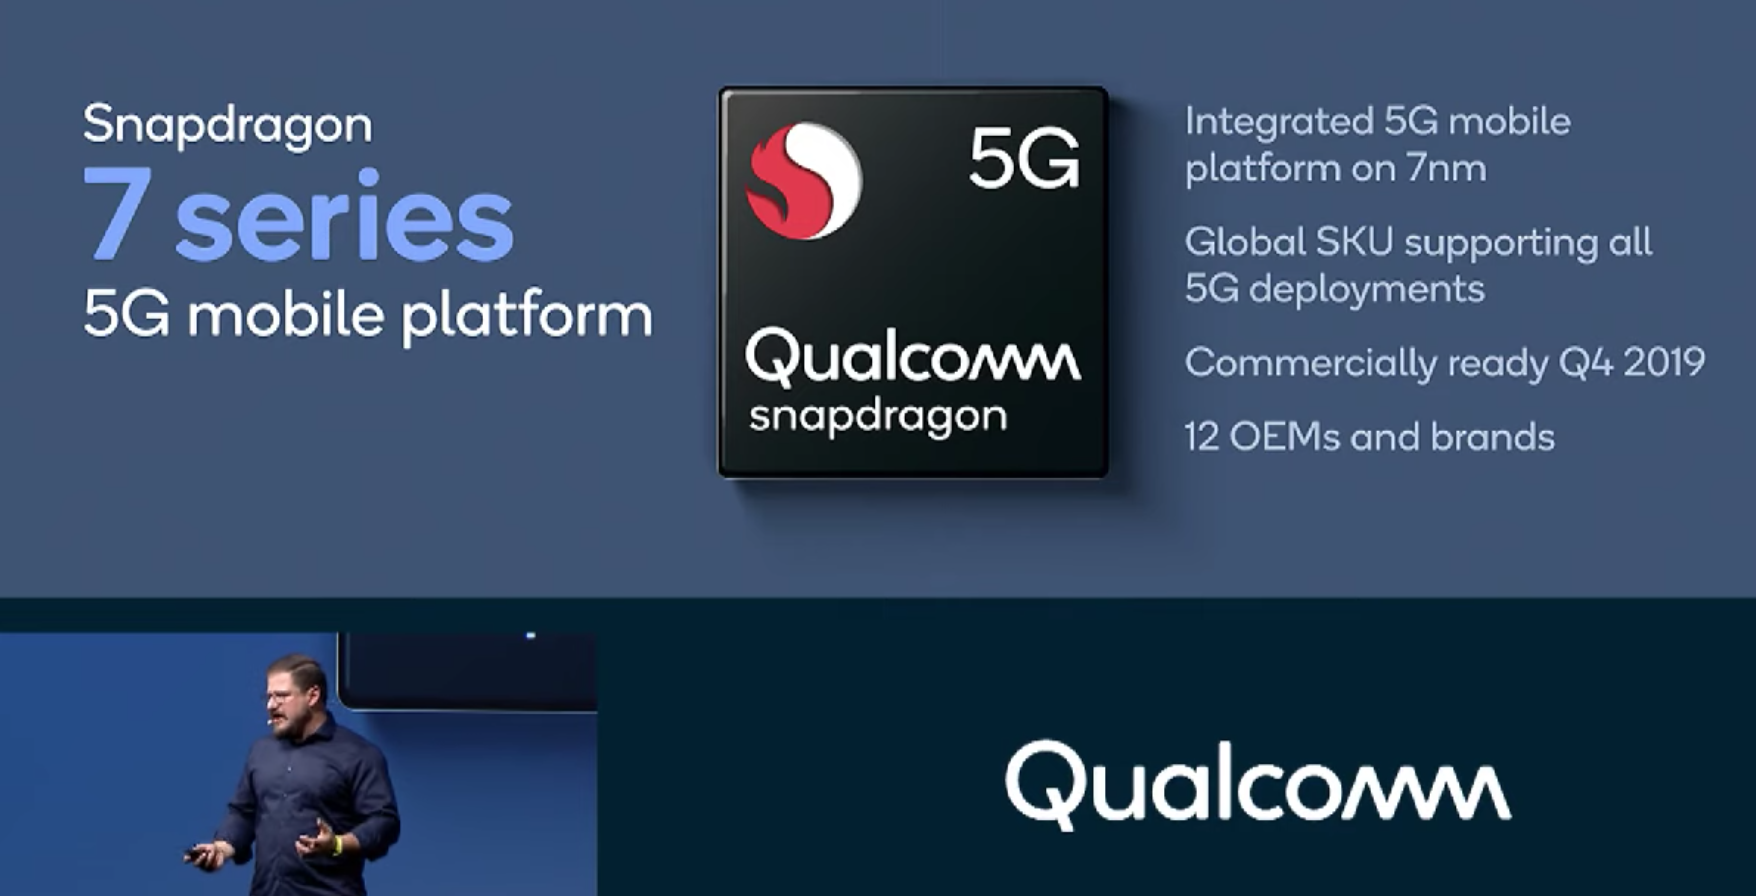 Qualcomm at IFA: 5G for more users, more use cases